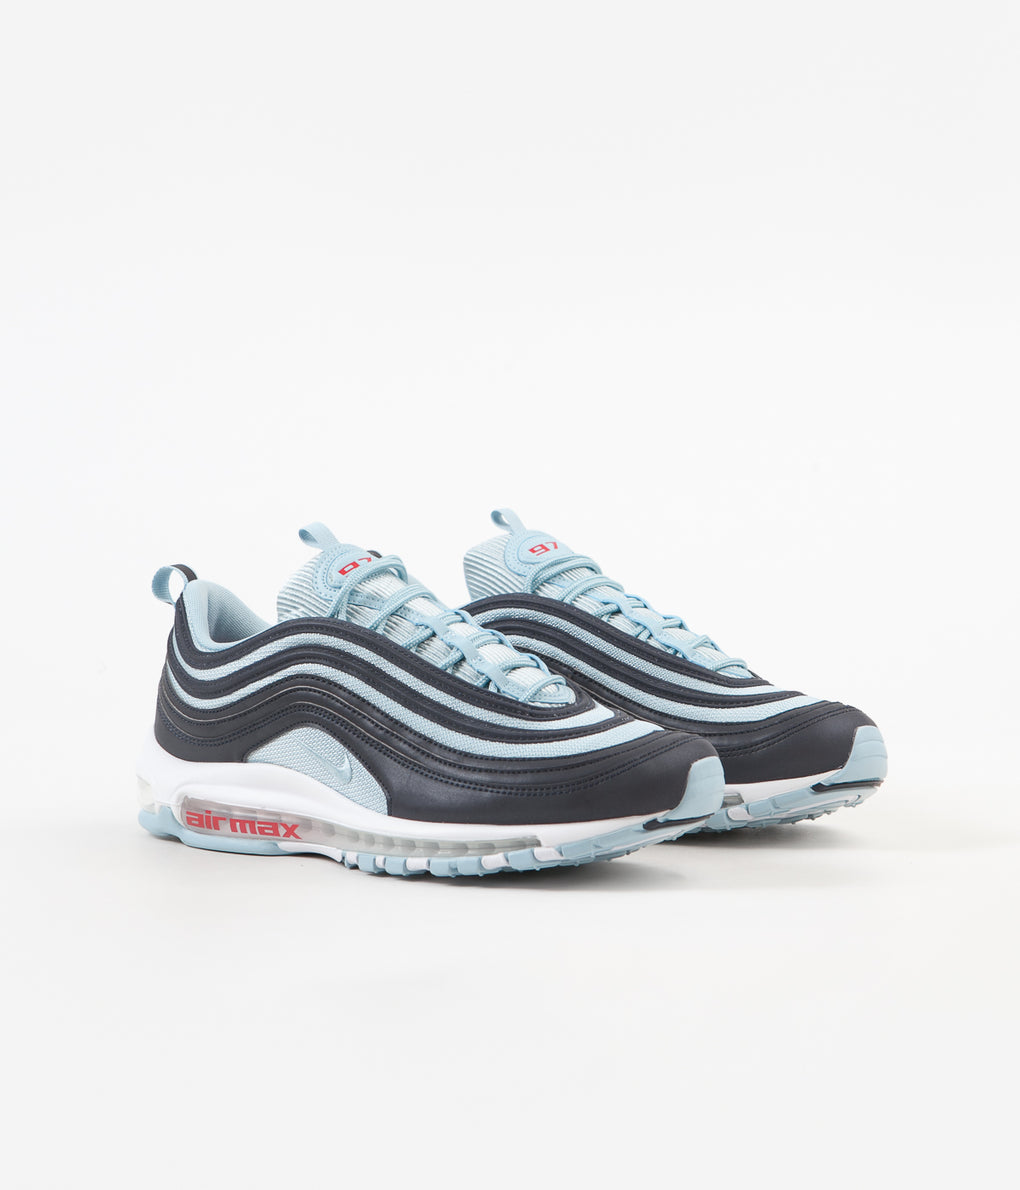 Nike Air Max 97 Premium Shoes - Dark Obsidian / Ocean Bliss - University Red